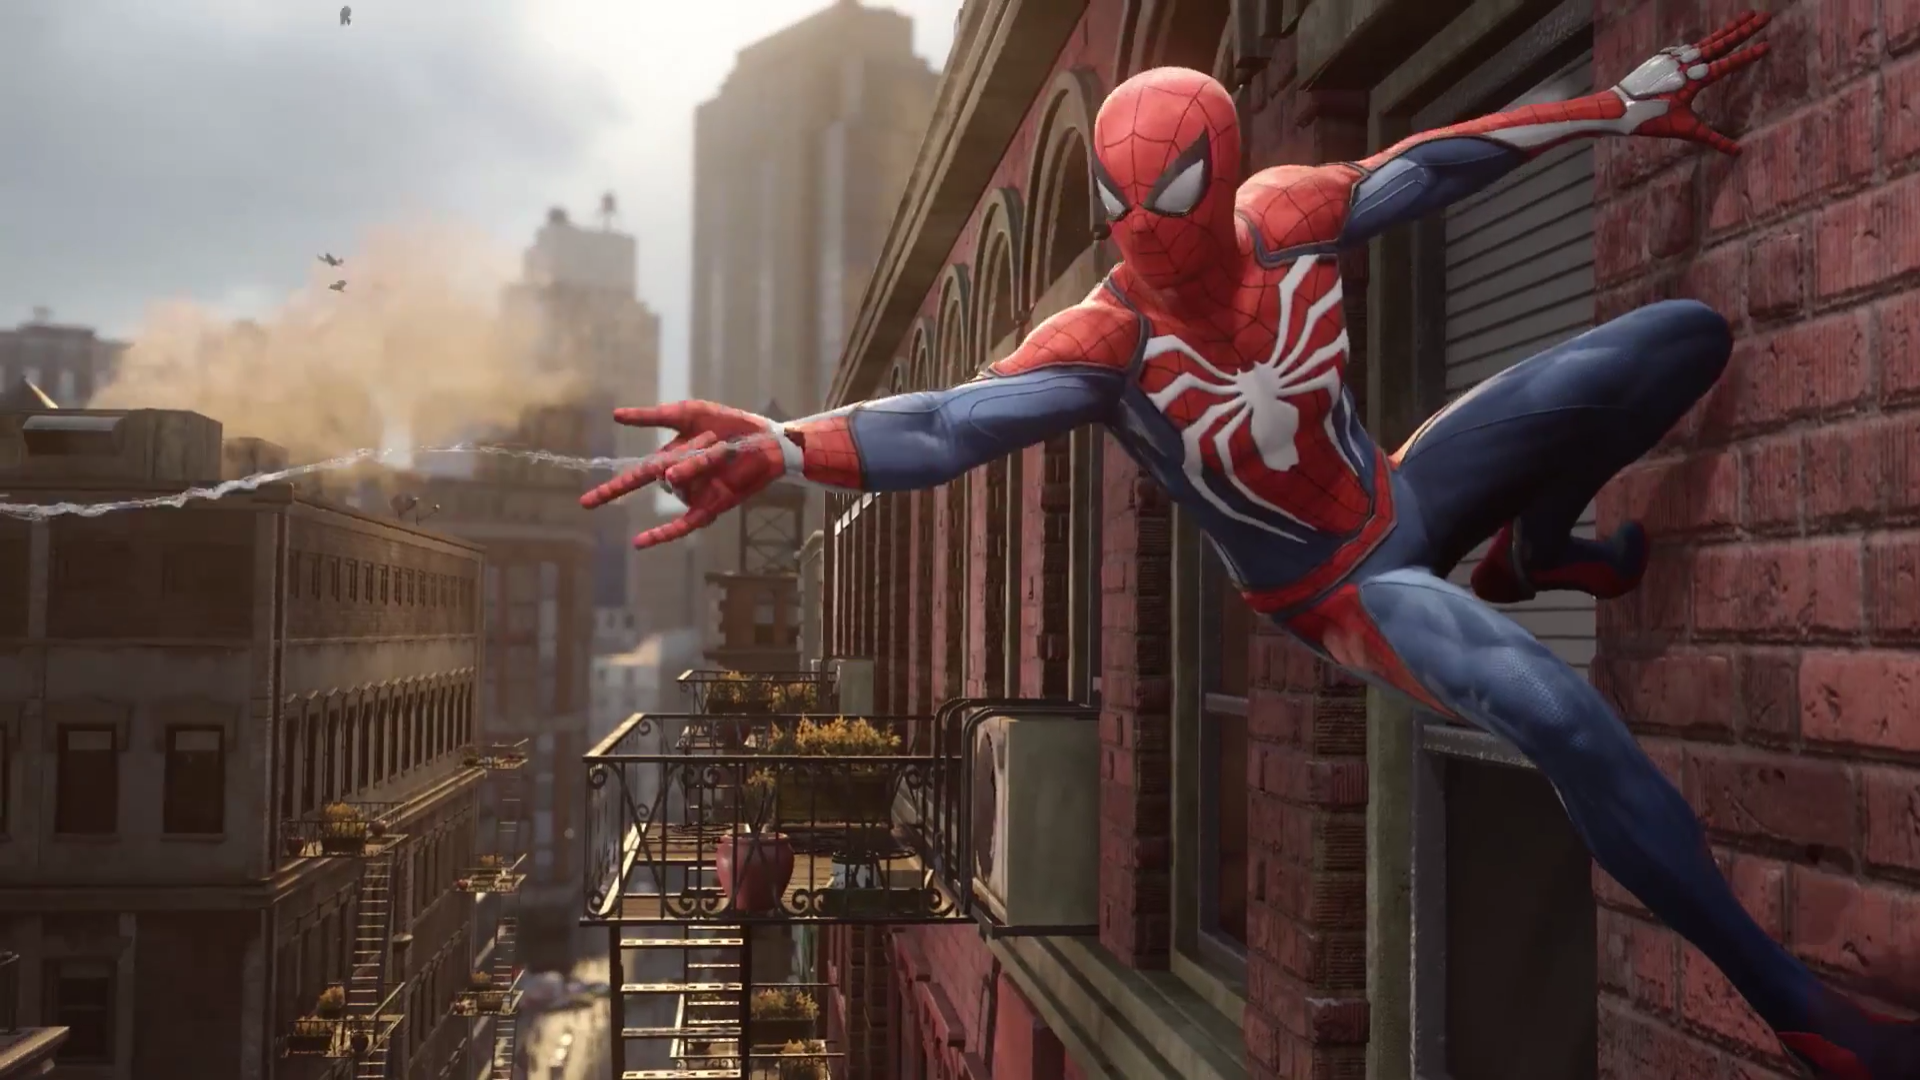 Spider Man Game Coming From Ratchet & Clank Devs Screenshot 2016 06 13 22.16.14